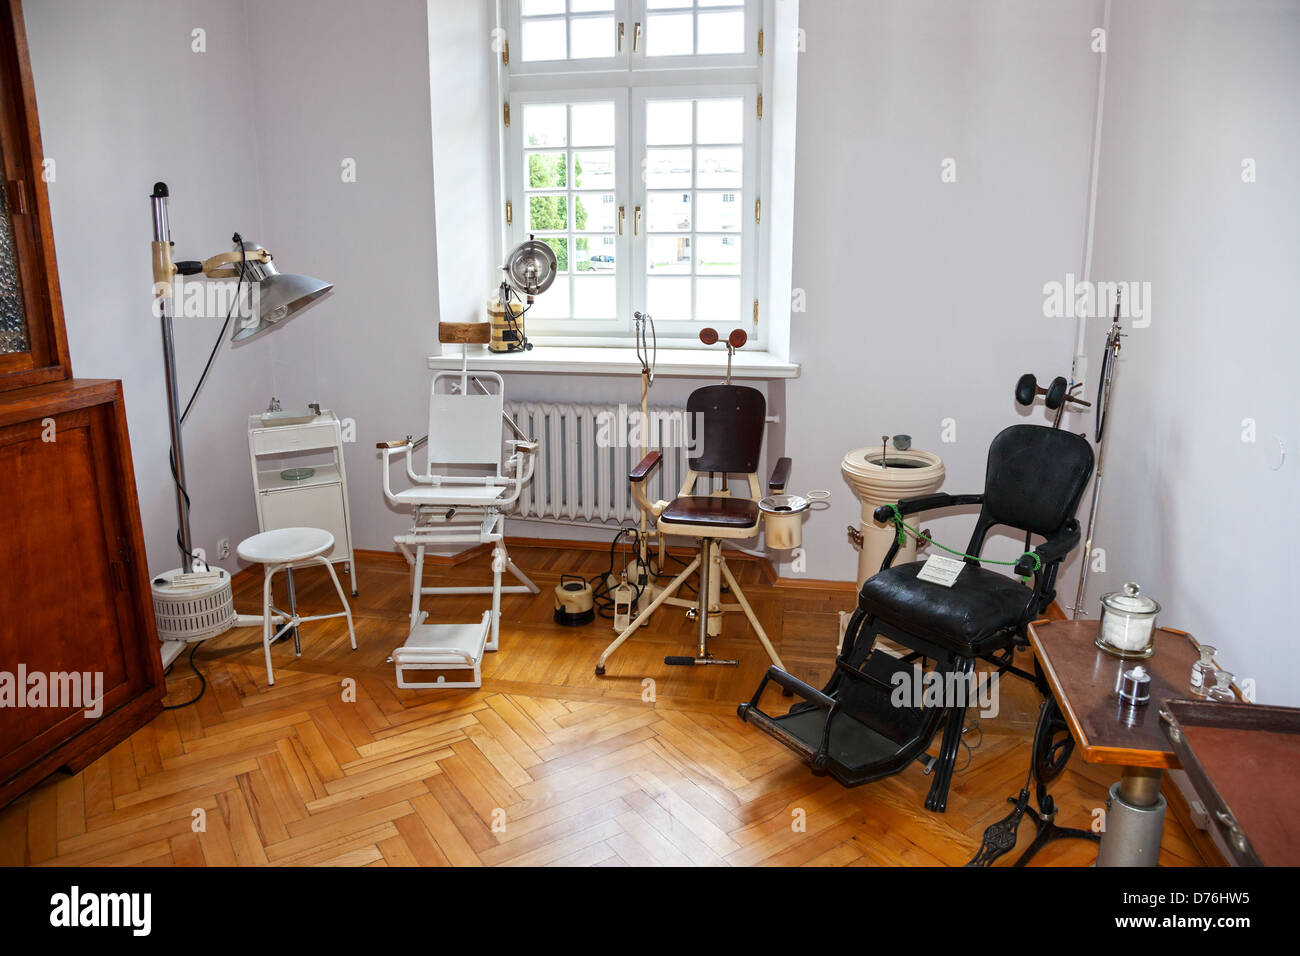 Vintage dentist chair and equipment of the last century. - Stock Image - Antique Dental Equipment Stock Photos & Antique Dental Equipment